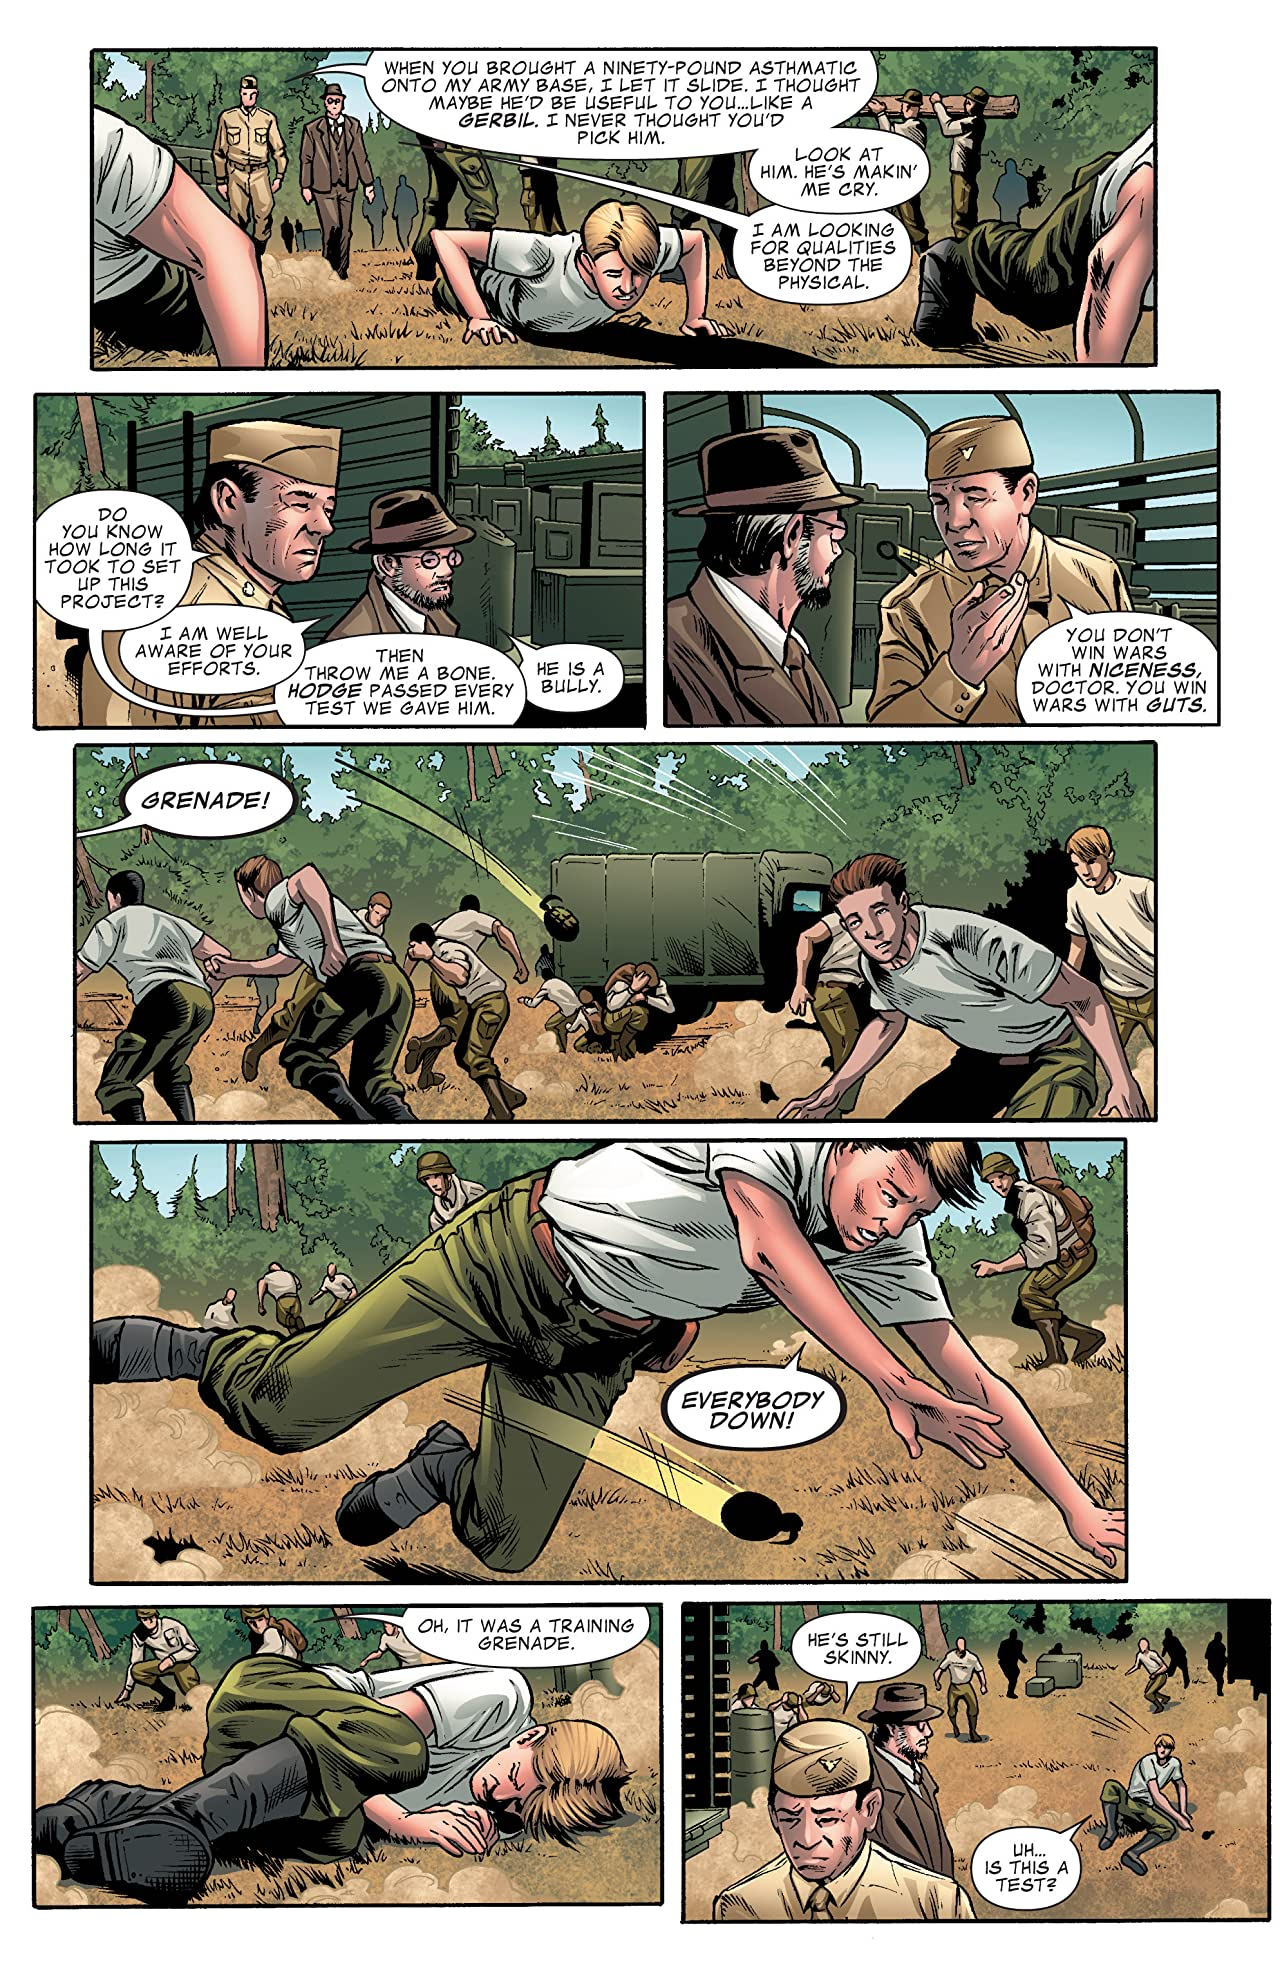 Marvel's Captain America: The First Avenger Adaptation #1 (of 2)